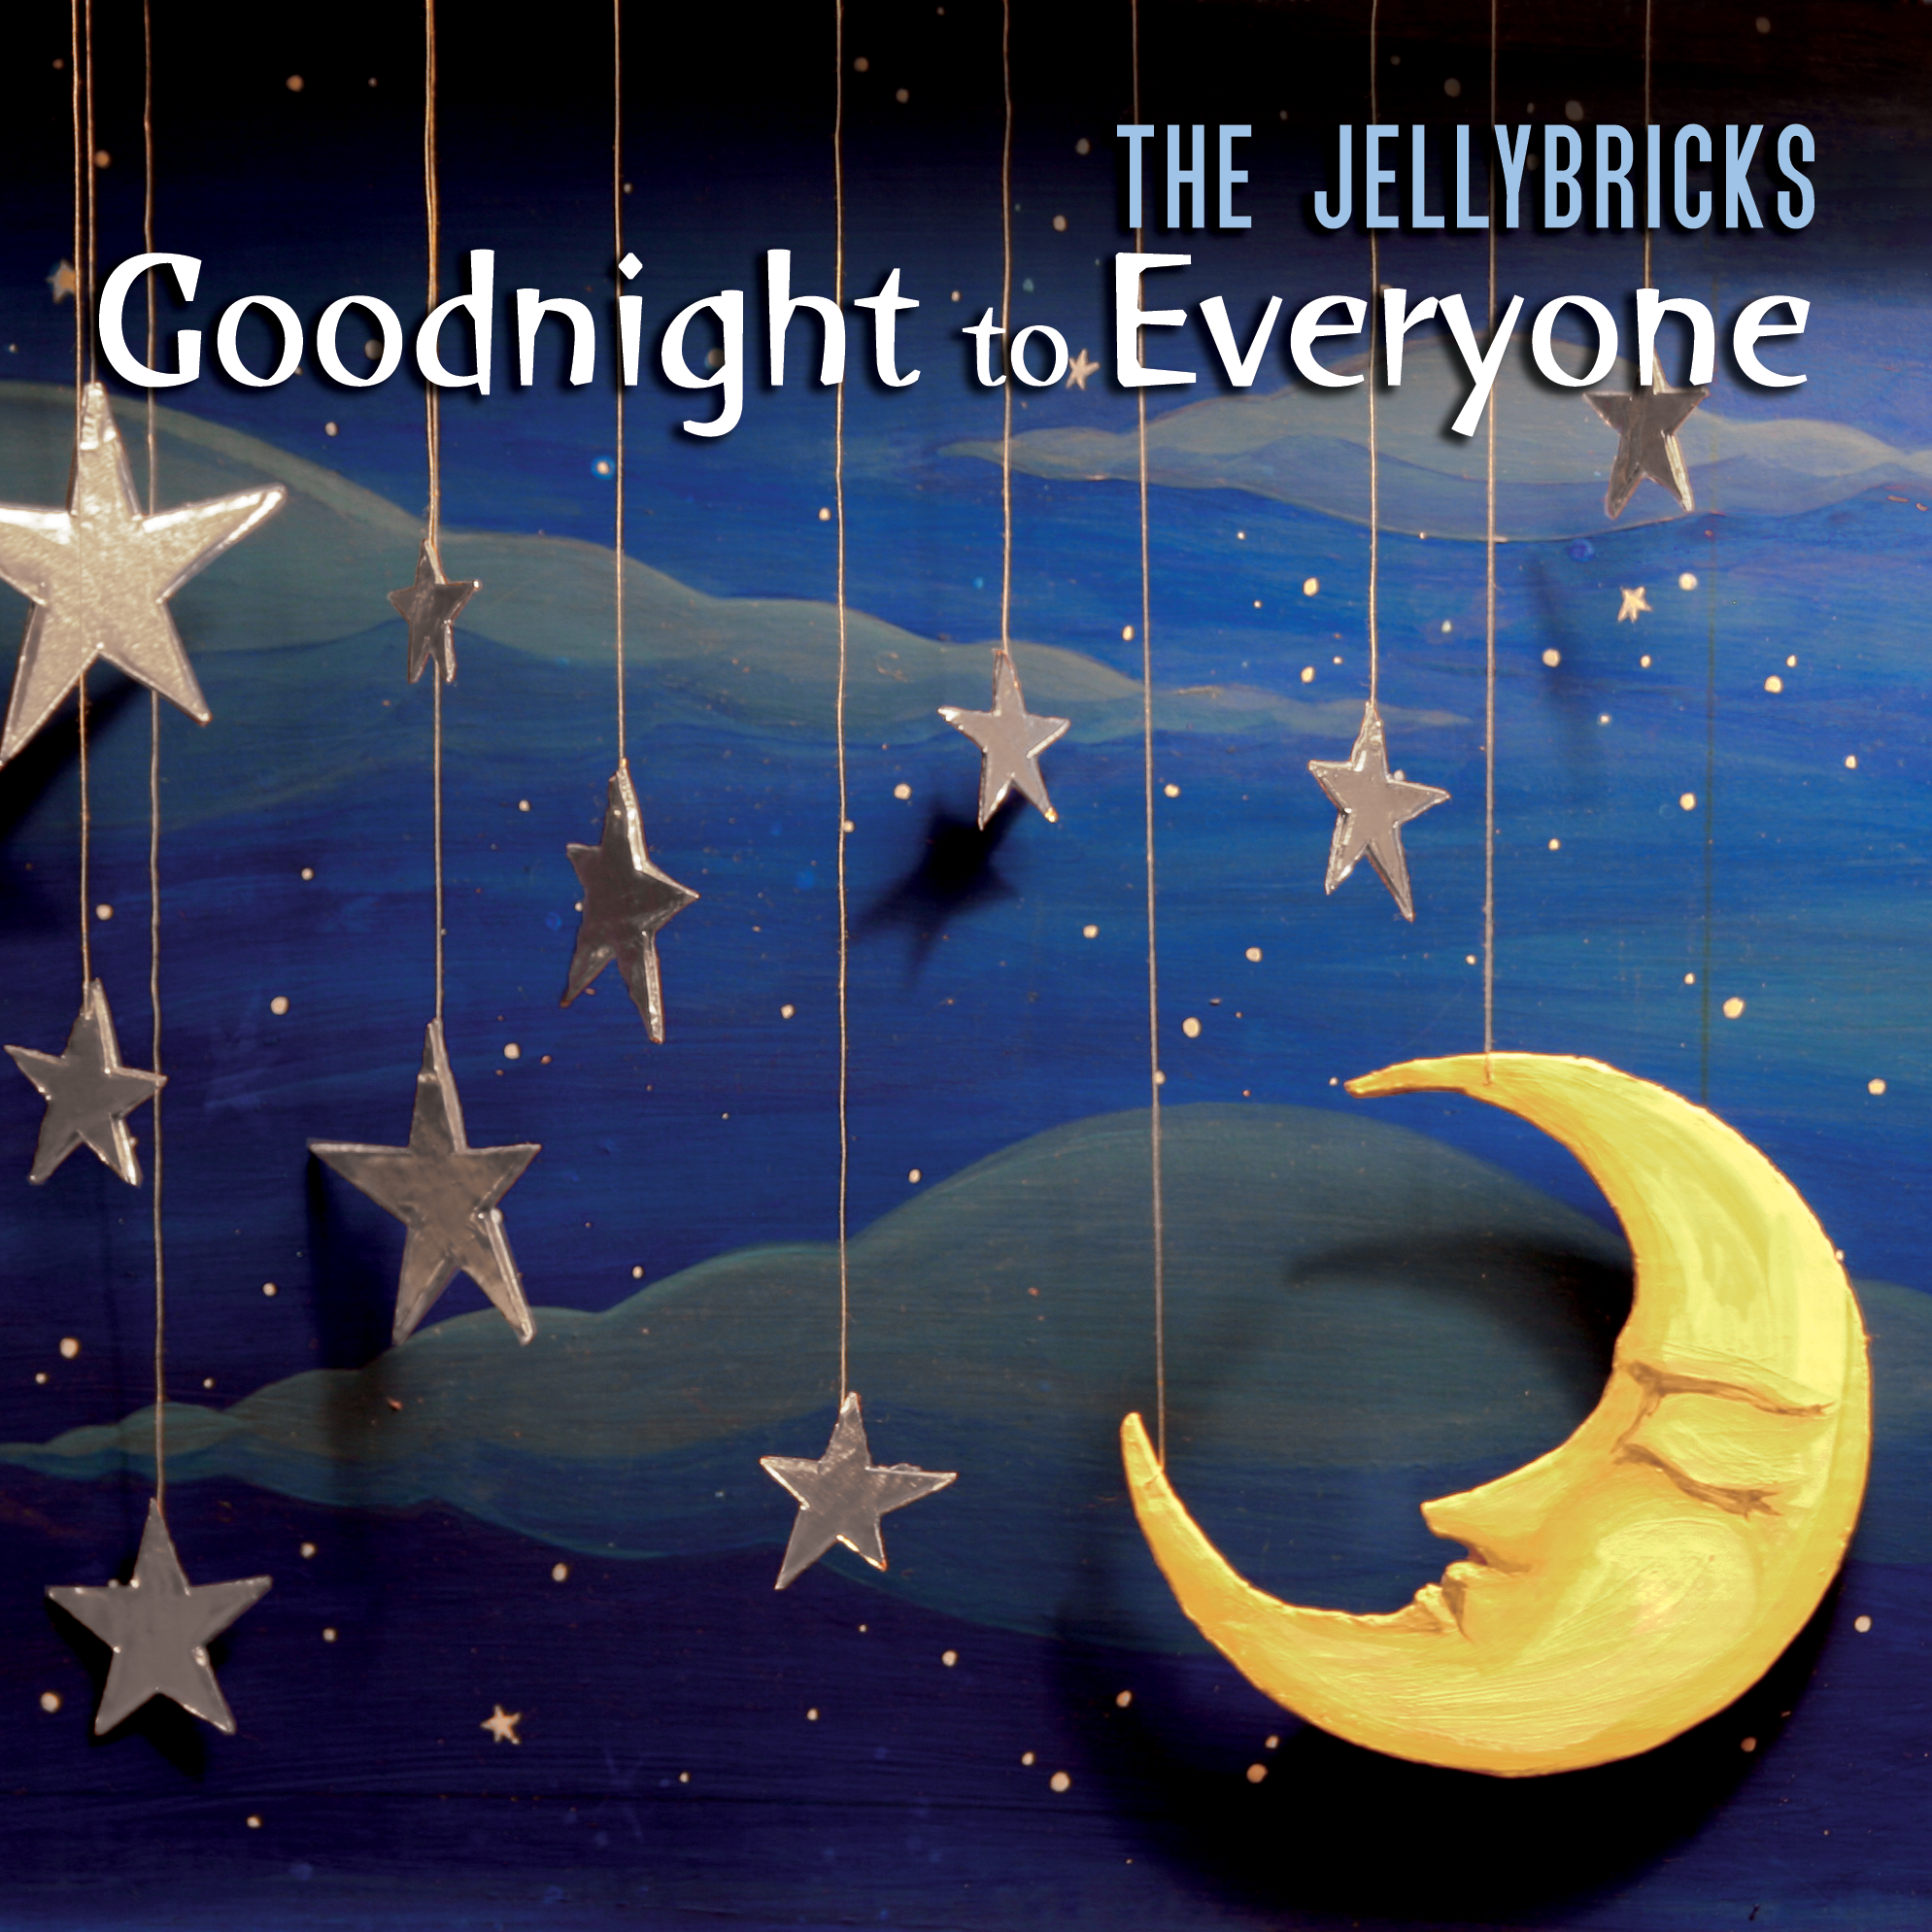 """Goodnight to Everyone - (2008) Primitive Records PRIM2008The Jellybricks are power pop veterans and I welcome the fourth release with open ears. Produced by Saul Zonana and three years in the making, it doesn't disappoint. Fans of IKE, Matthew Sweet and The Tories, who enjoy a heavier produced guitar sound will enjoy it for sure.""""Ruin Us"""" is just an example of great shimmering melodic guitar pop. The Jellybricks' maturing songwriting skills and musical prowess continue to impress with """"Broken Record"""" and the opener """"Eyes Wide"""" could easily be a radio-ready single if people gave them the chance.— PowerpopaholicAvailable on iTunes, Apple Music, Spotify, Amazon, Google Play, and more!"""